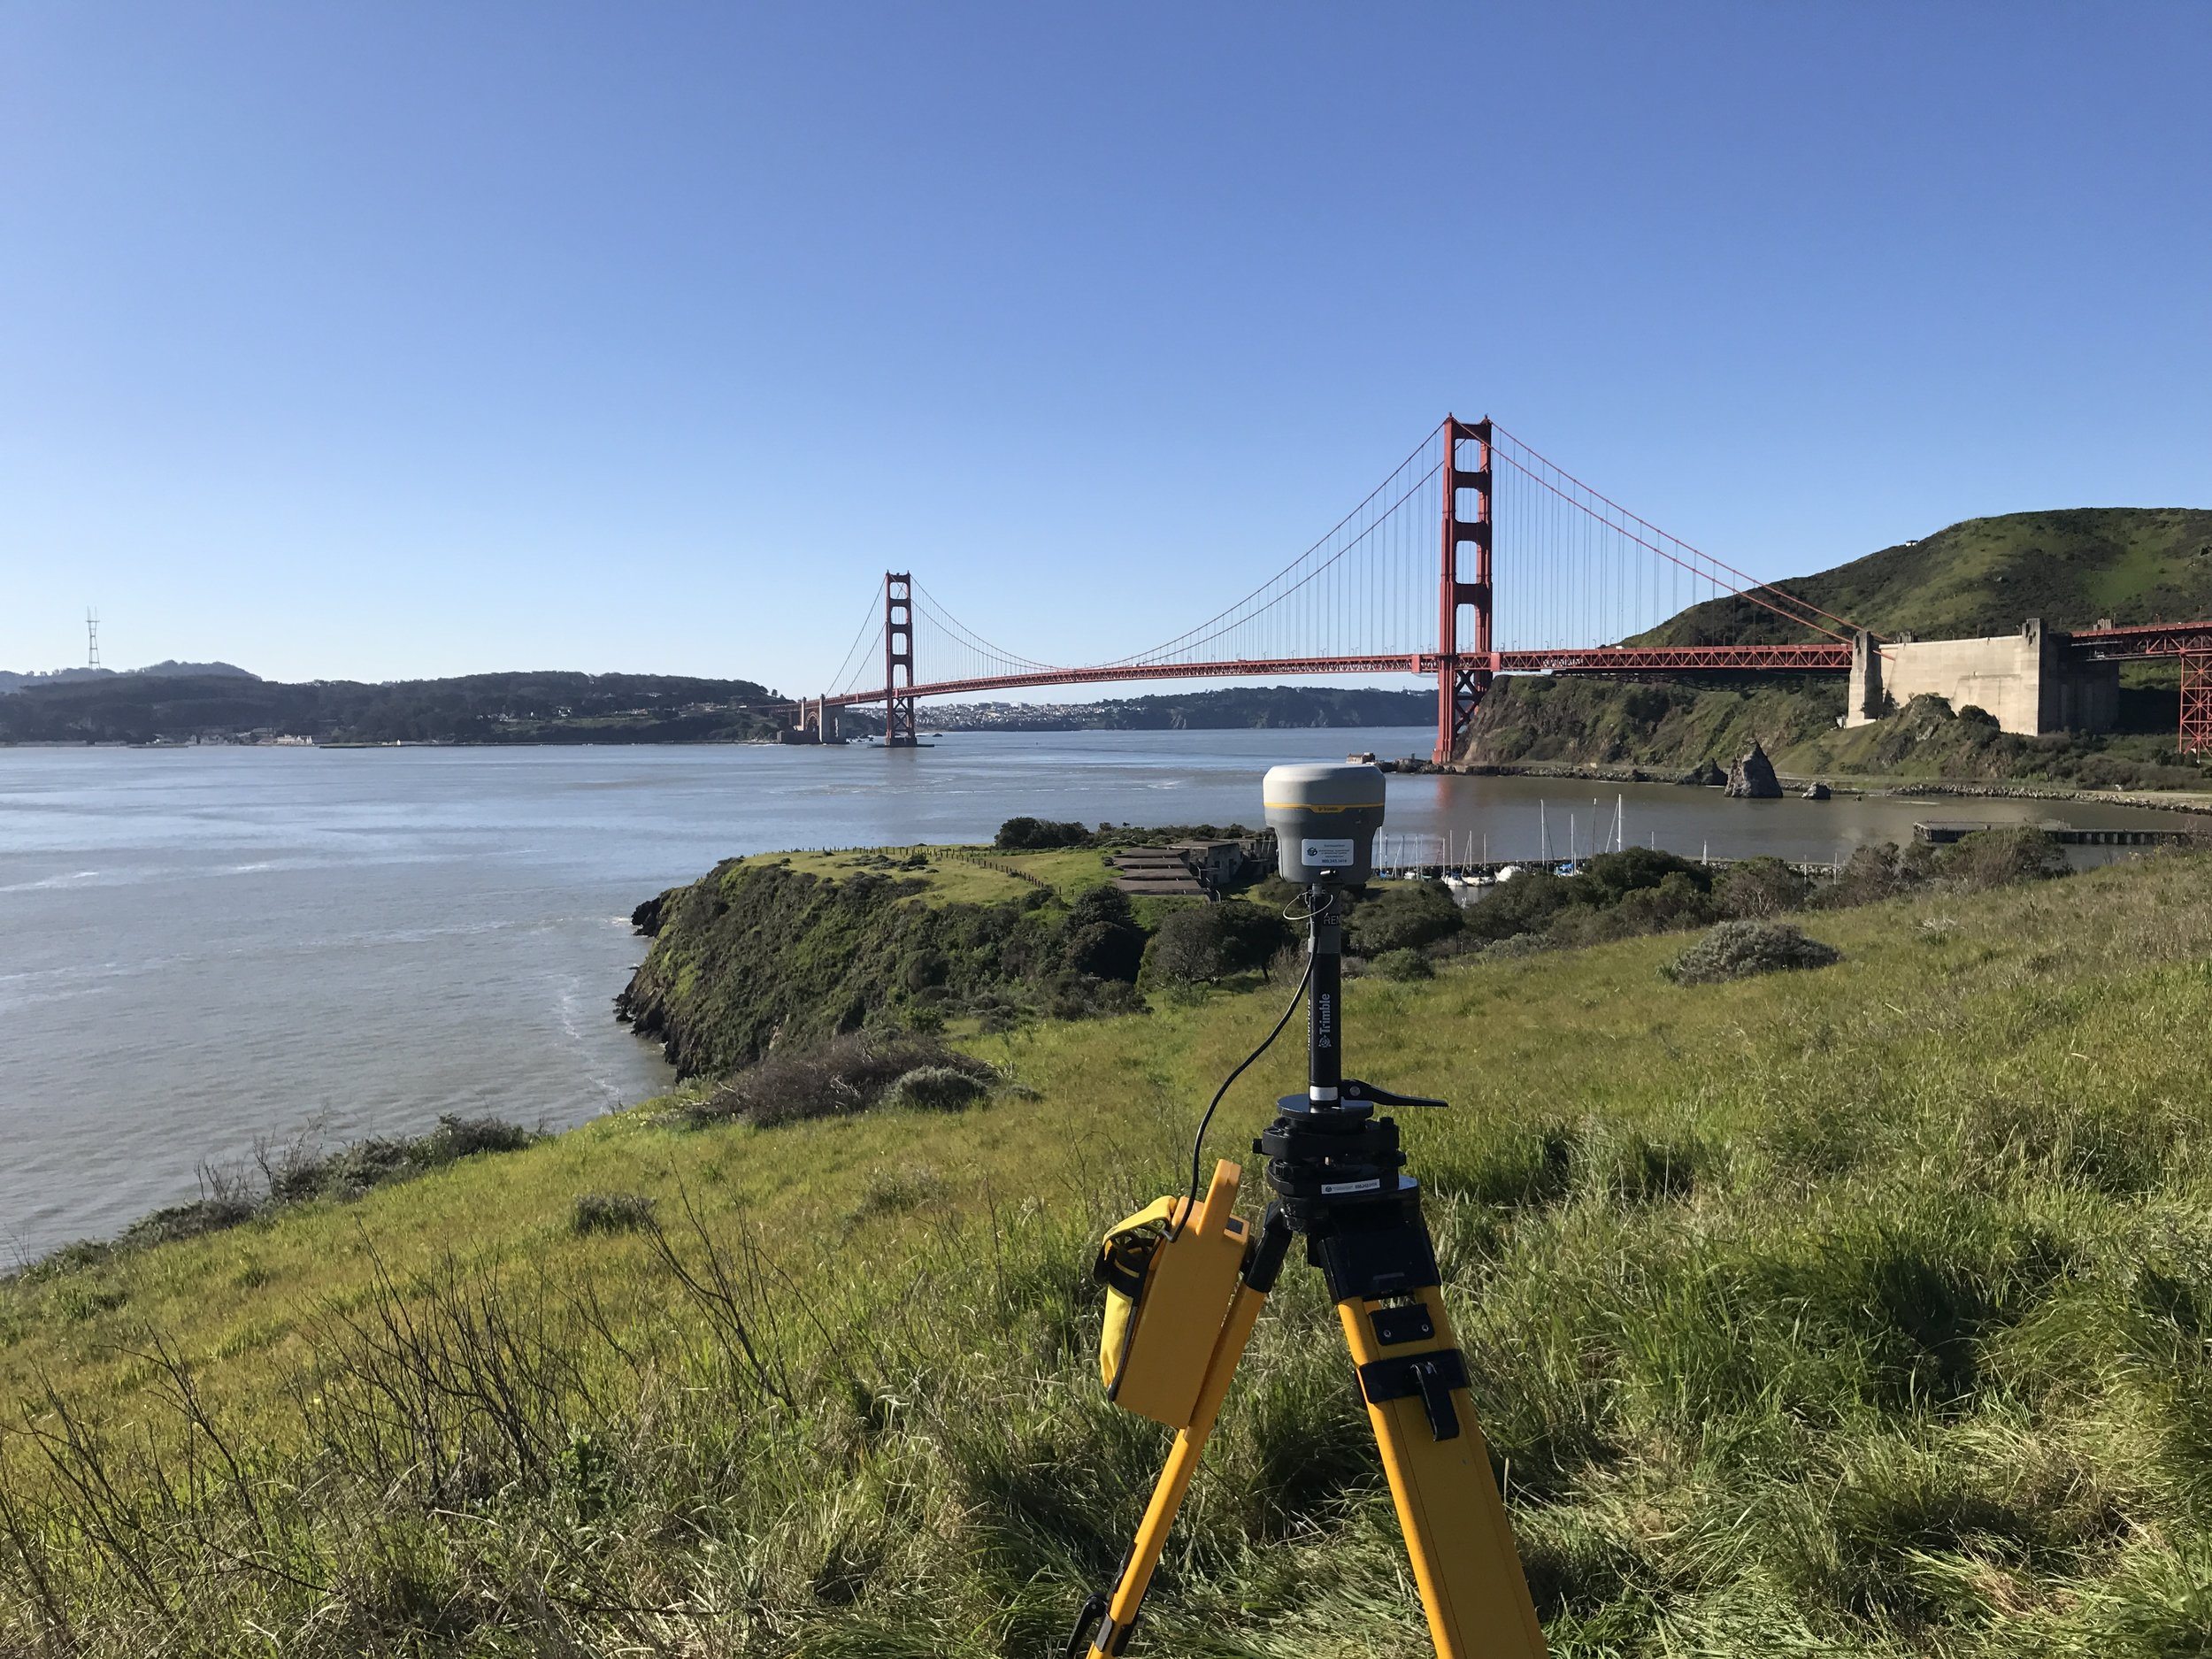 Oberkamper's Real Time Kinematic (RTK) Base Station at Cavallo Point